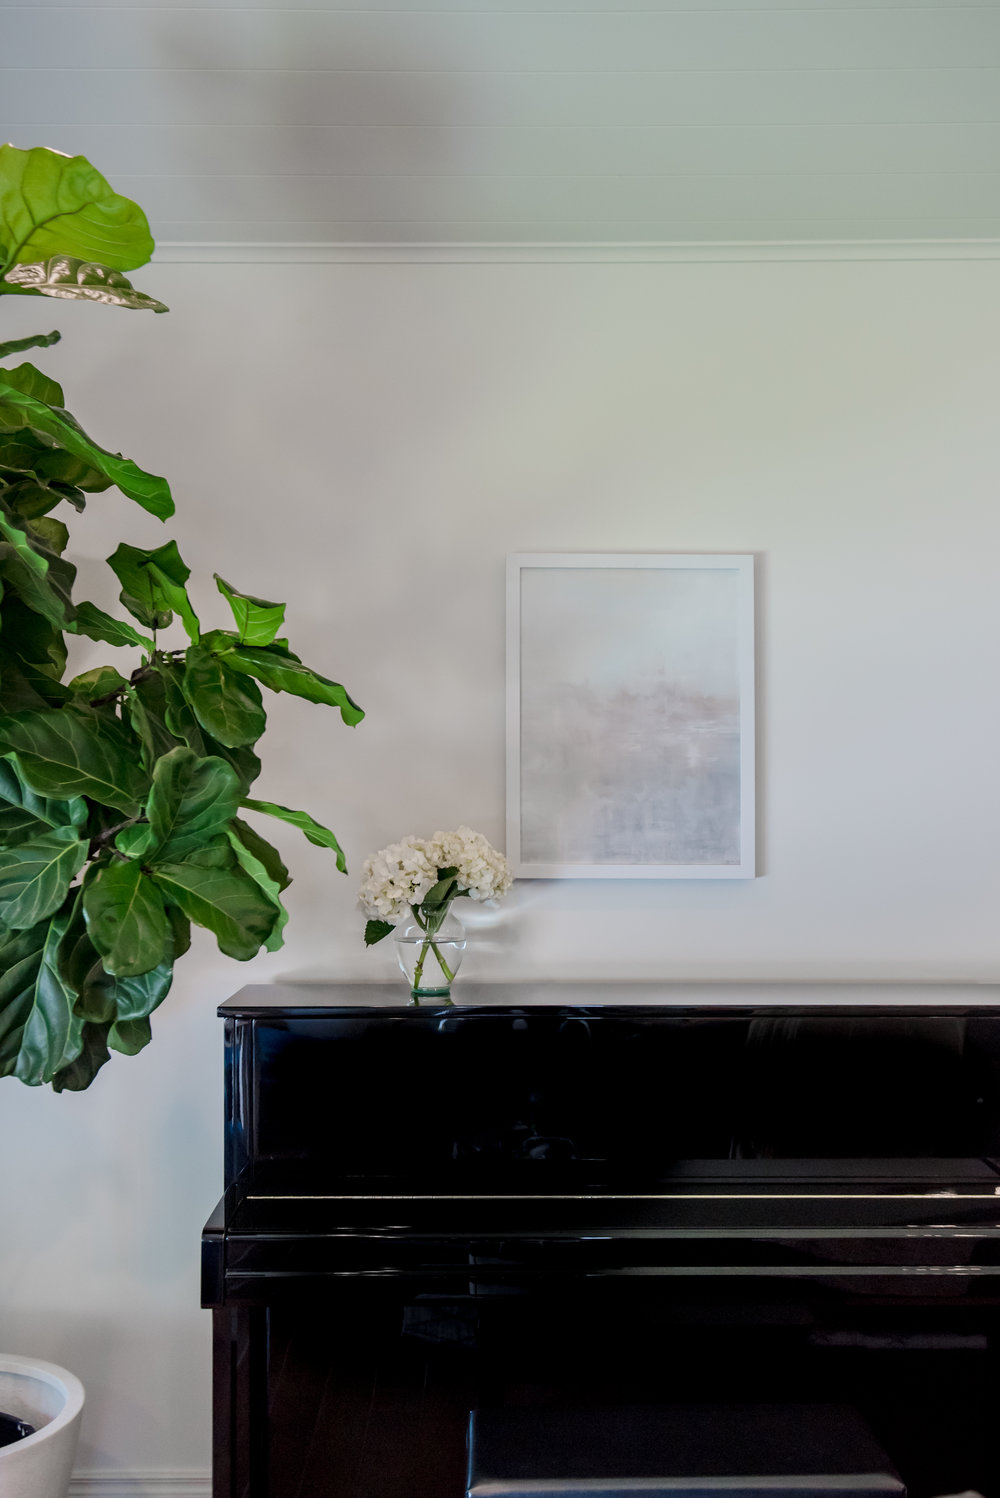 32+Piano+Fiddleleaf+Plants+CustomArt.jpg